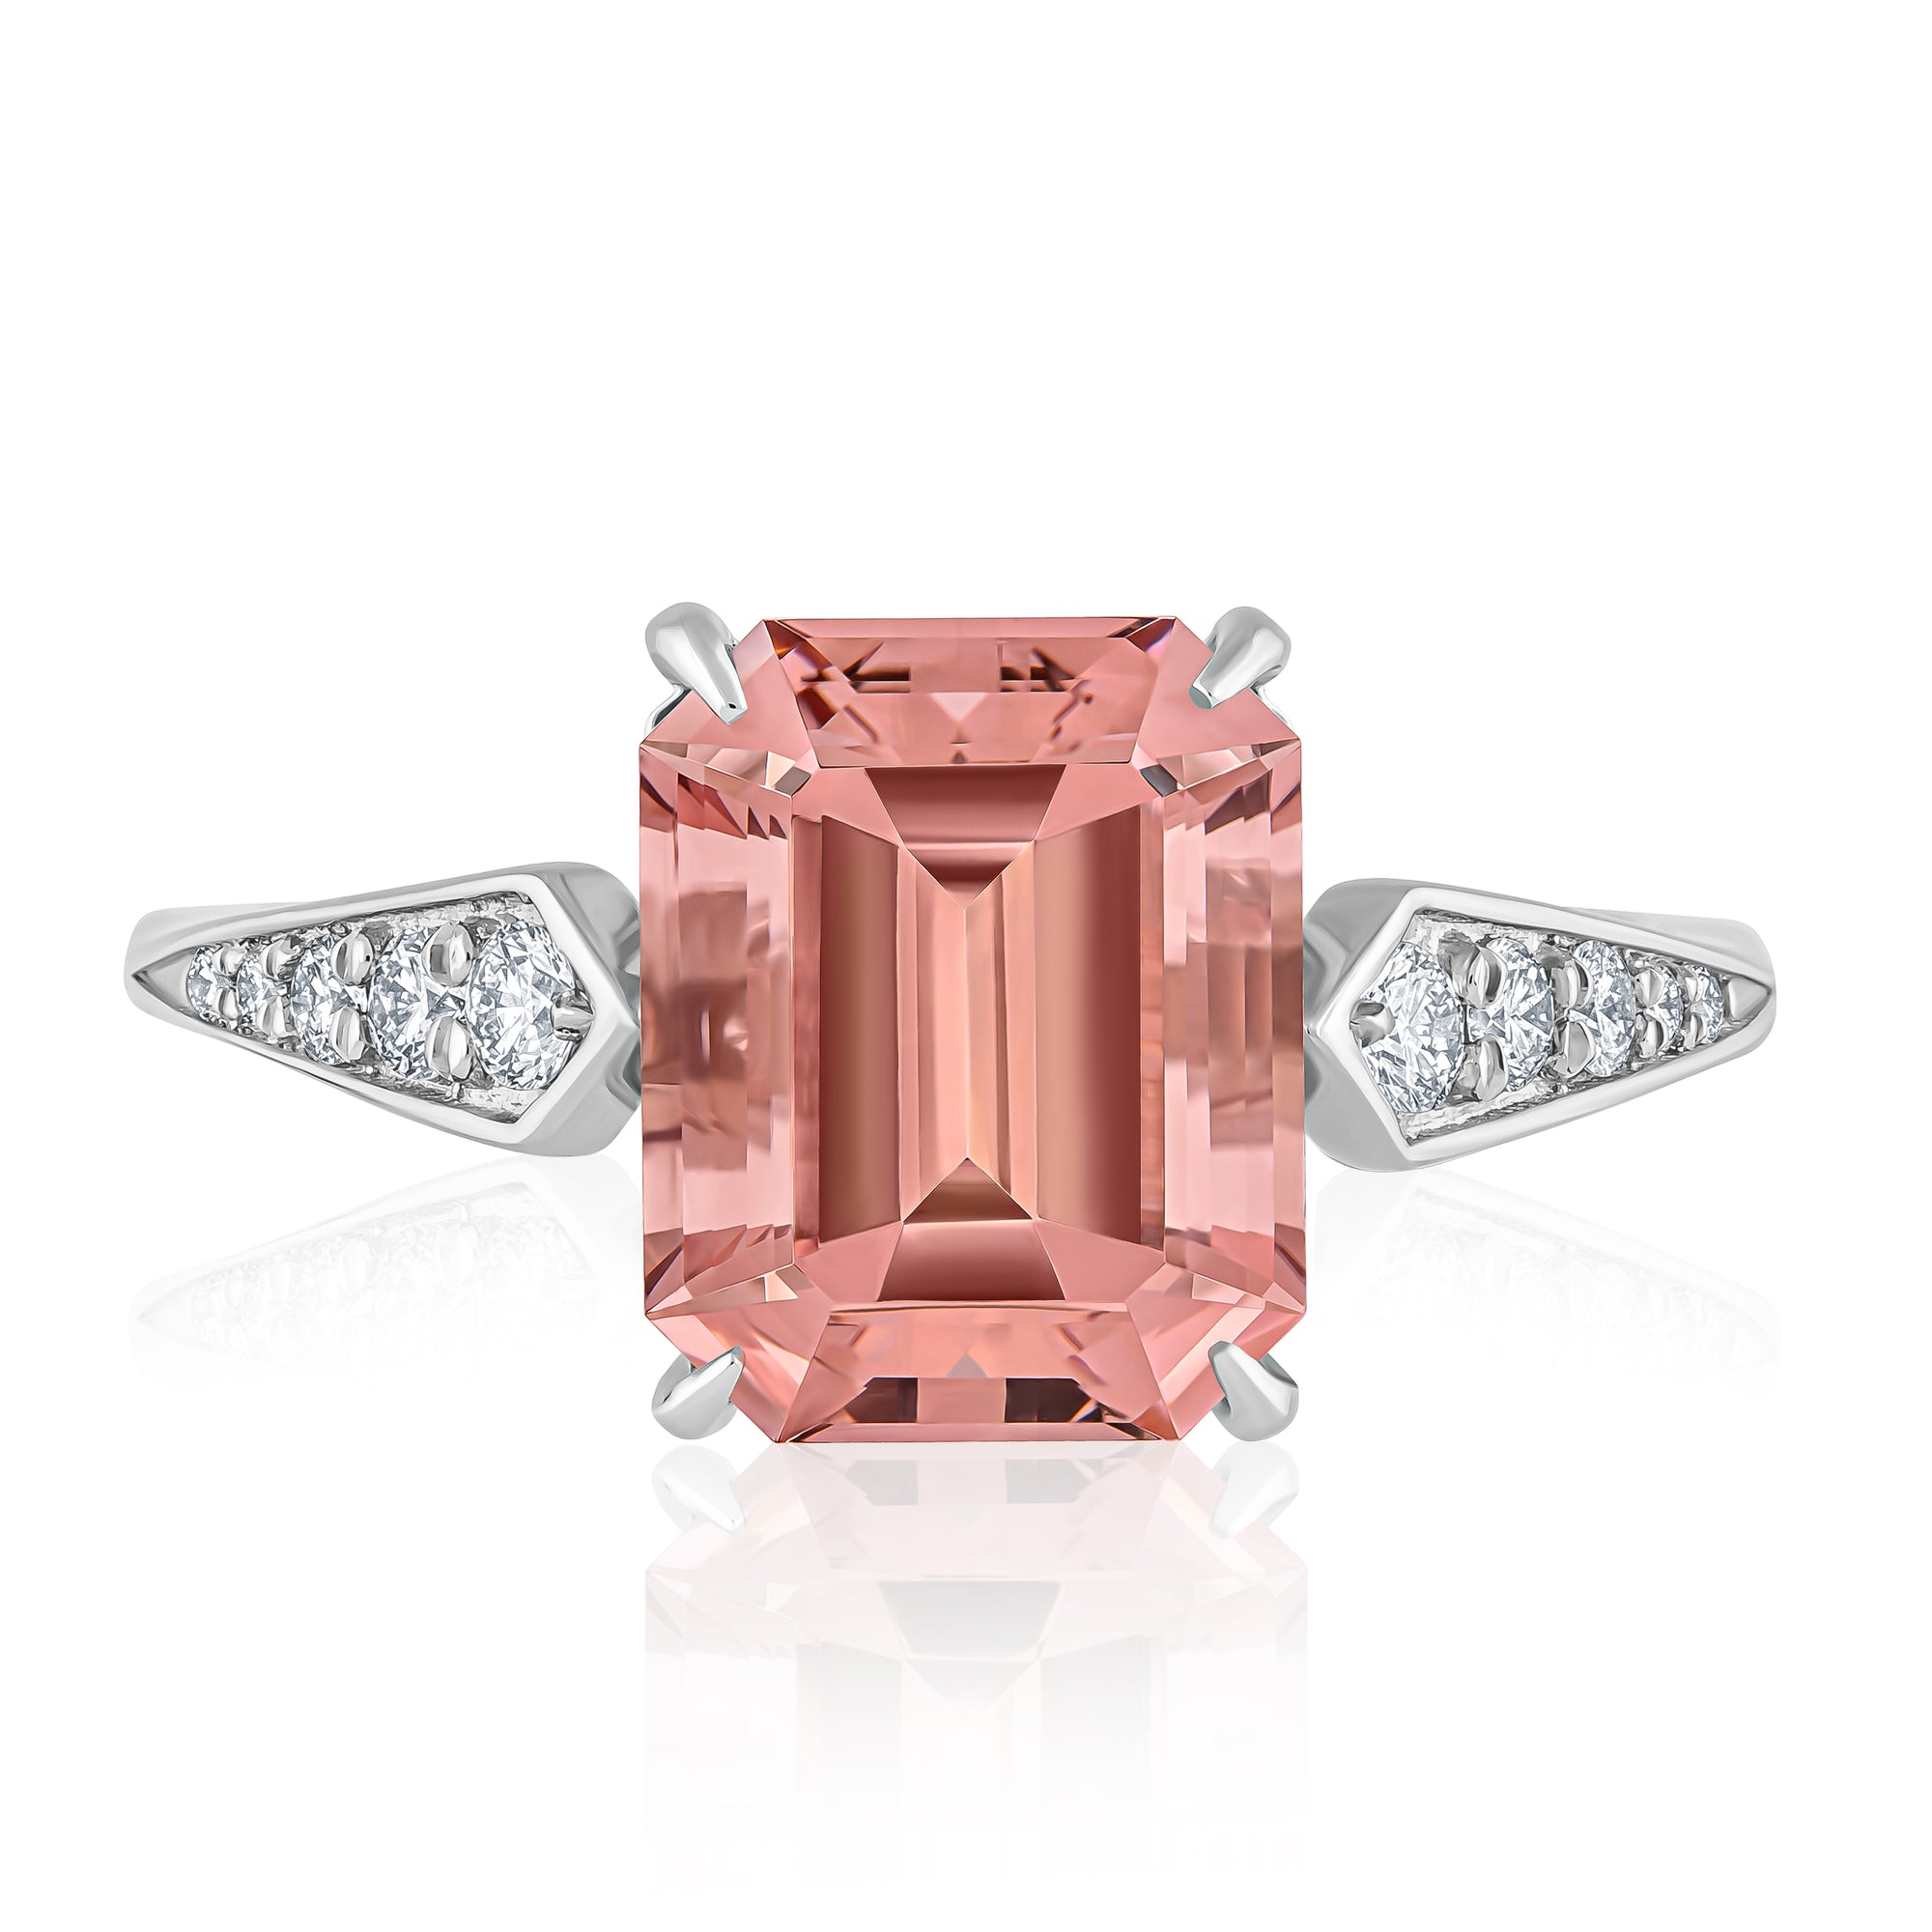 MORGANITE PLATINUM RING